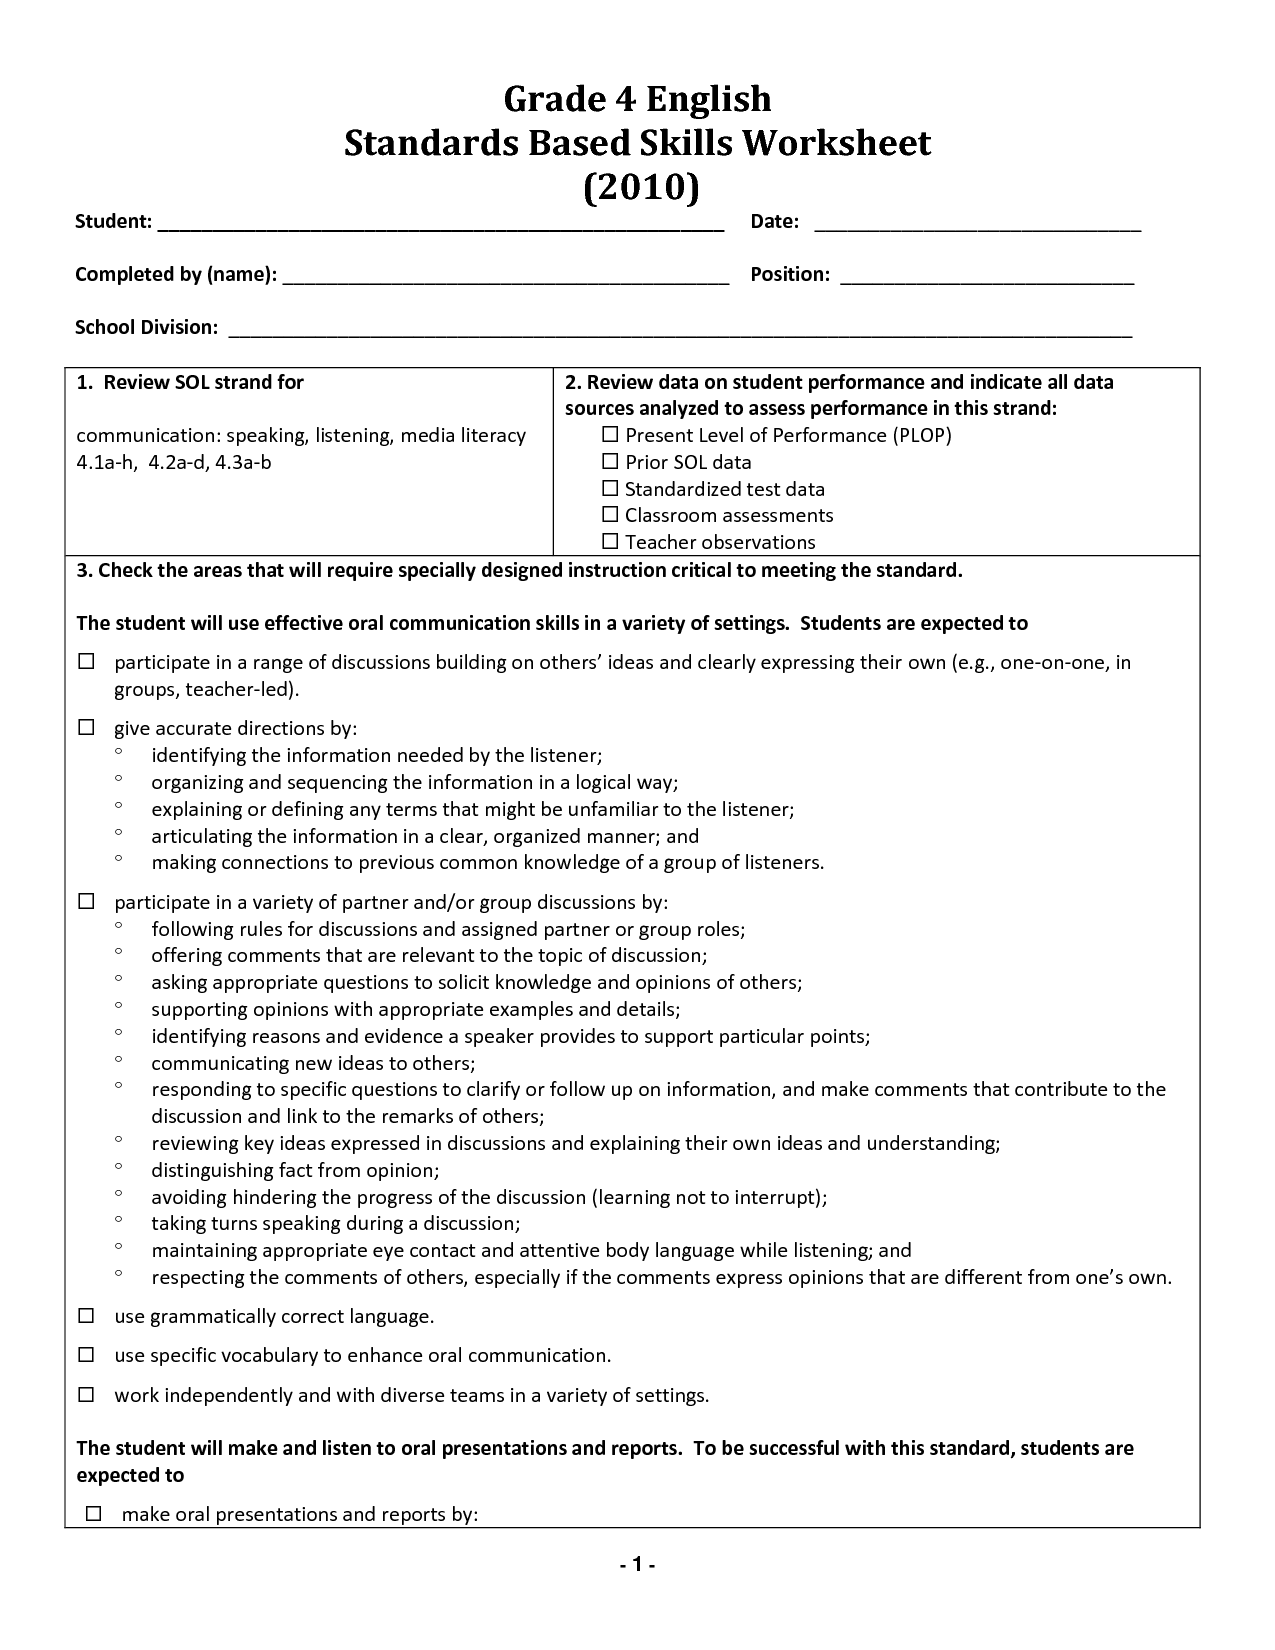 16 Best Images Of 4 Grade Grammar Worksheet